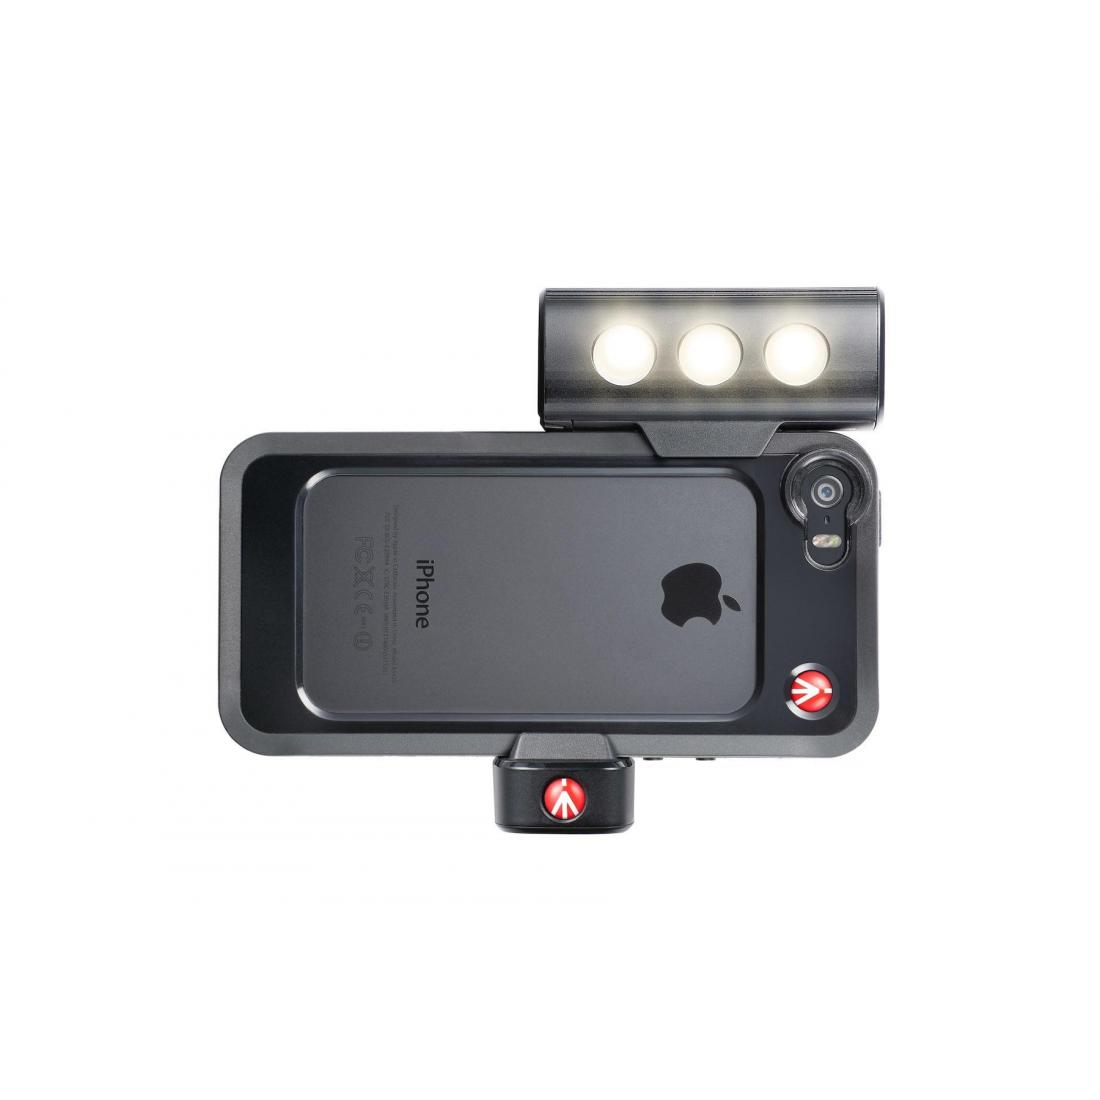 Luce Led Dannosa.Manfrotto Mklklyp5s Kit Per Iphone 5 5s Con Luce Led E